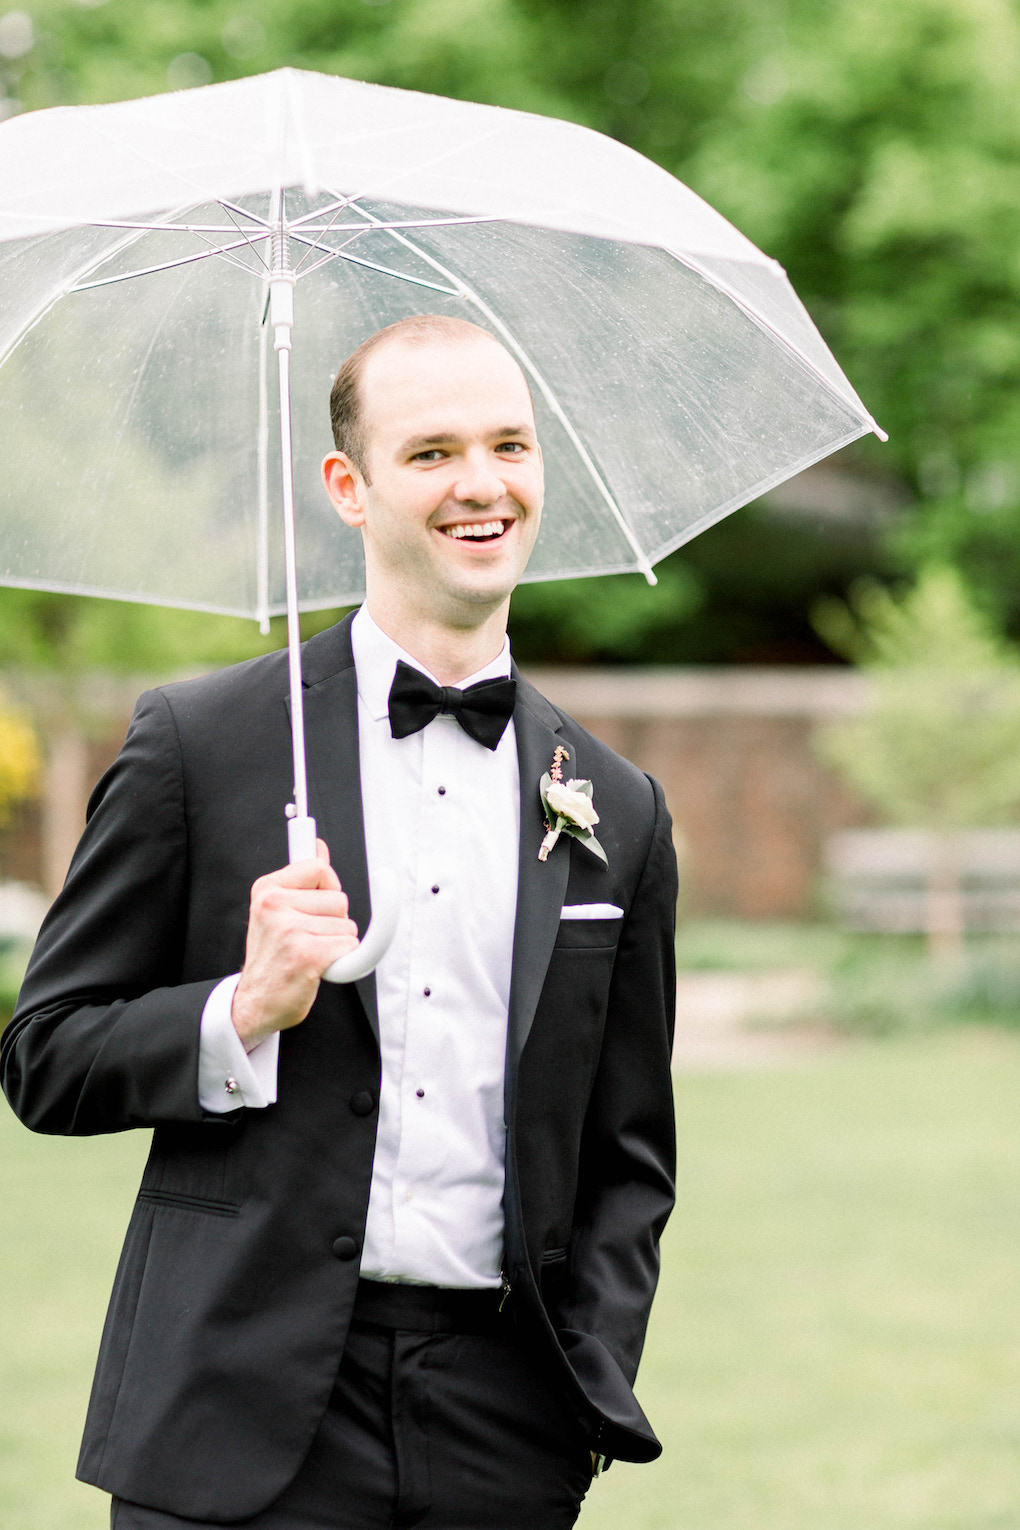 Groom posing with umbrella: Romantic Fairytale wedding at the Omni William Penn in Pittsburgh, PA planned by Exhale Events. Find more wedding inspiration at exhale-events.com!